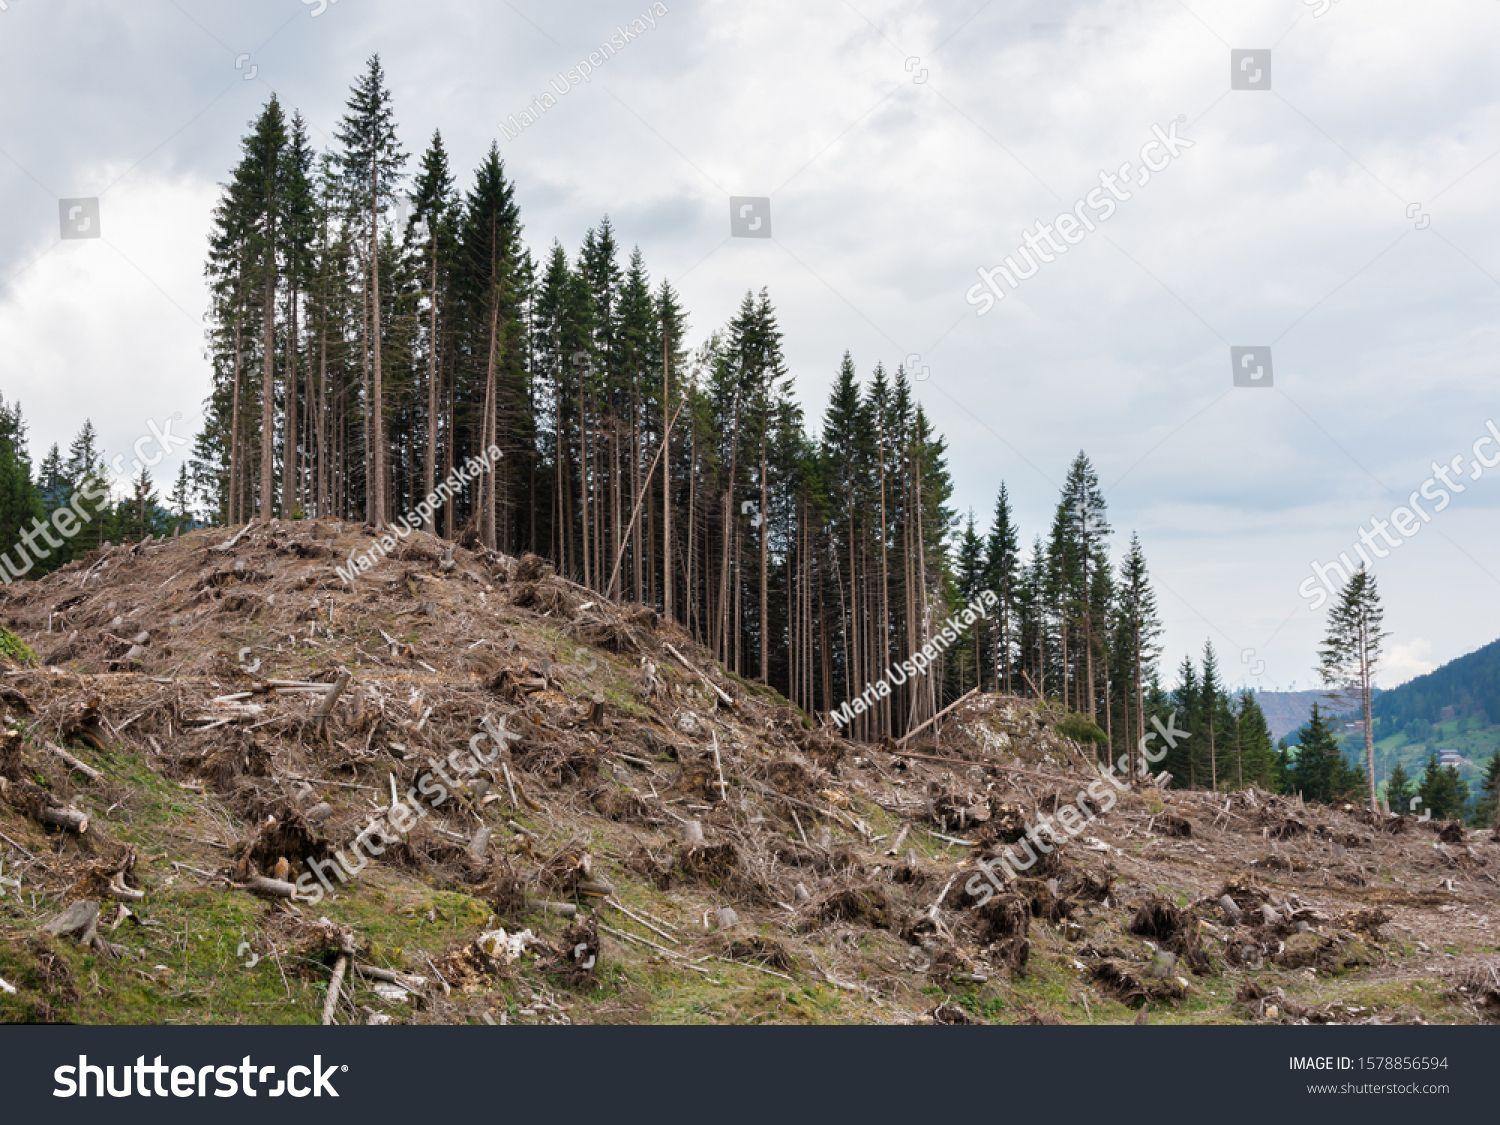 Destroyed Forest After An Avalanche Or Hurricane Natural Disaster Causing Deforestation Ad Affiliate Avalanche Hur Natural Disasters Forest Stock Photos